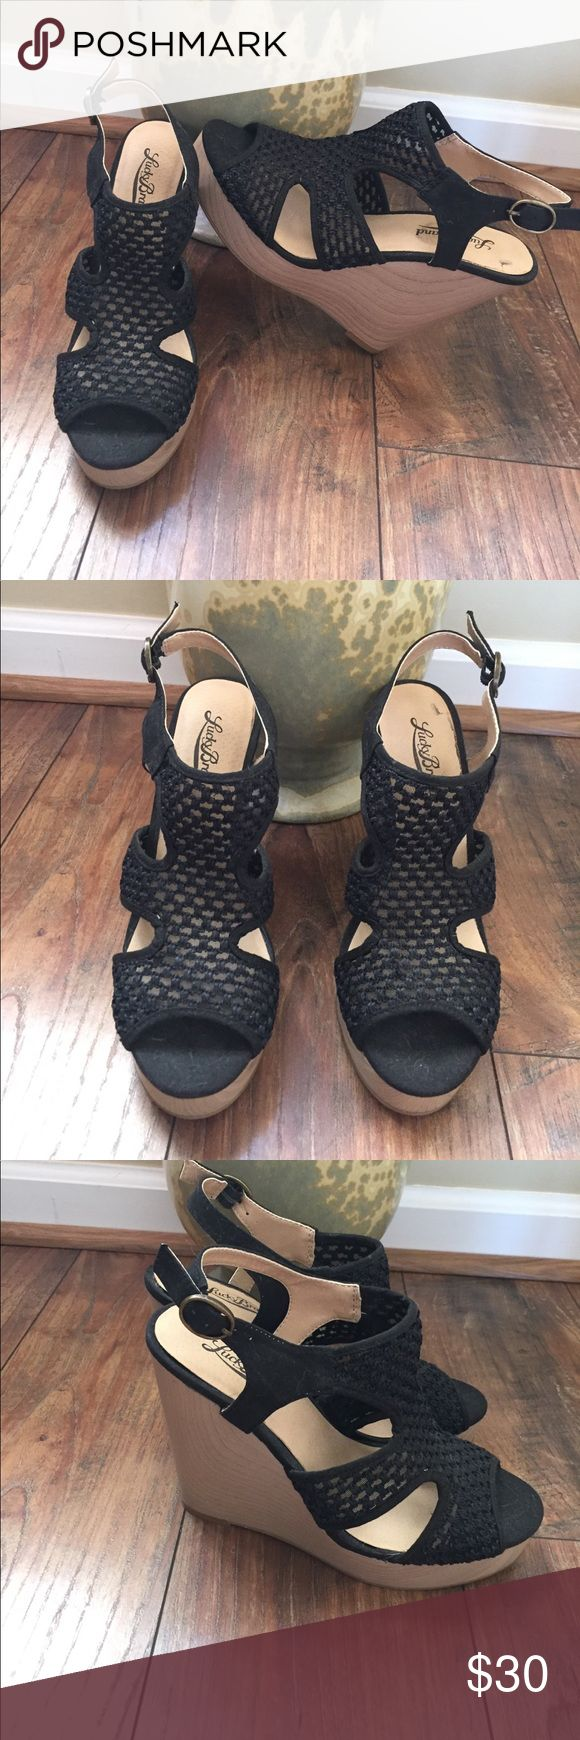 LUCKY BRAND WEDGES Only worn once on vacation!!! In brand new condition! Purchased at the lucky store! Very cute almost lace like  in black with light sand wedge. Heel is 4 inches with a 1 inch platform! Lucky Brand Shoes Wedges